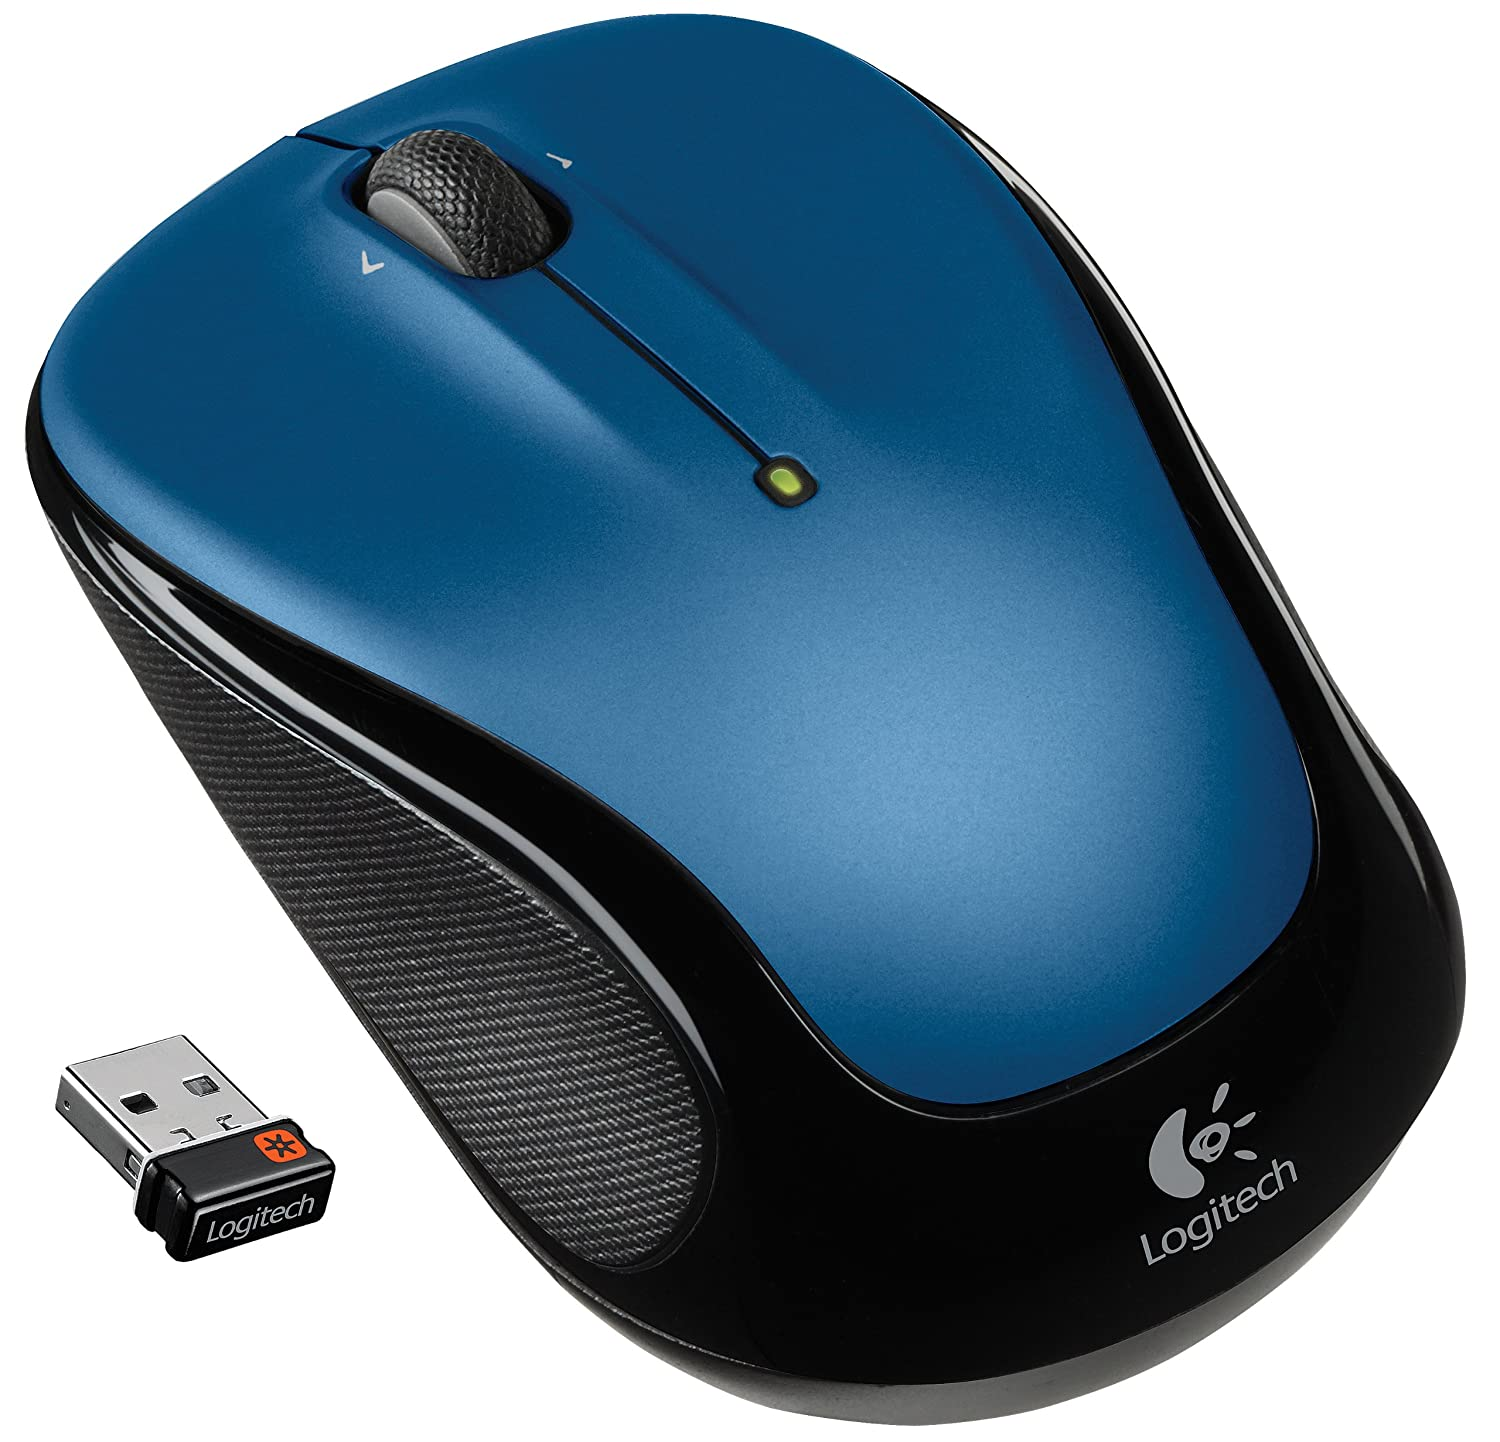 Logitech Wireless Mouse M325 with Designed-For-Web Scrolling – Blue ($12.99)